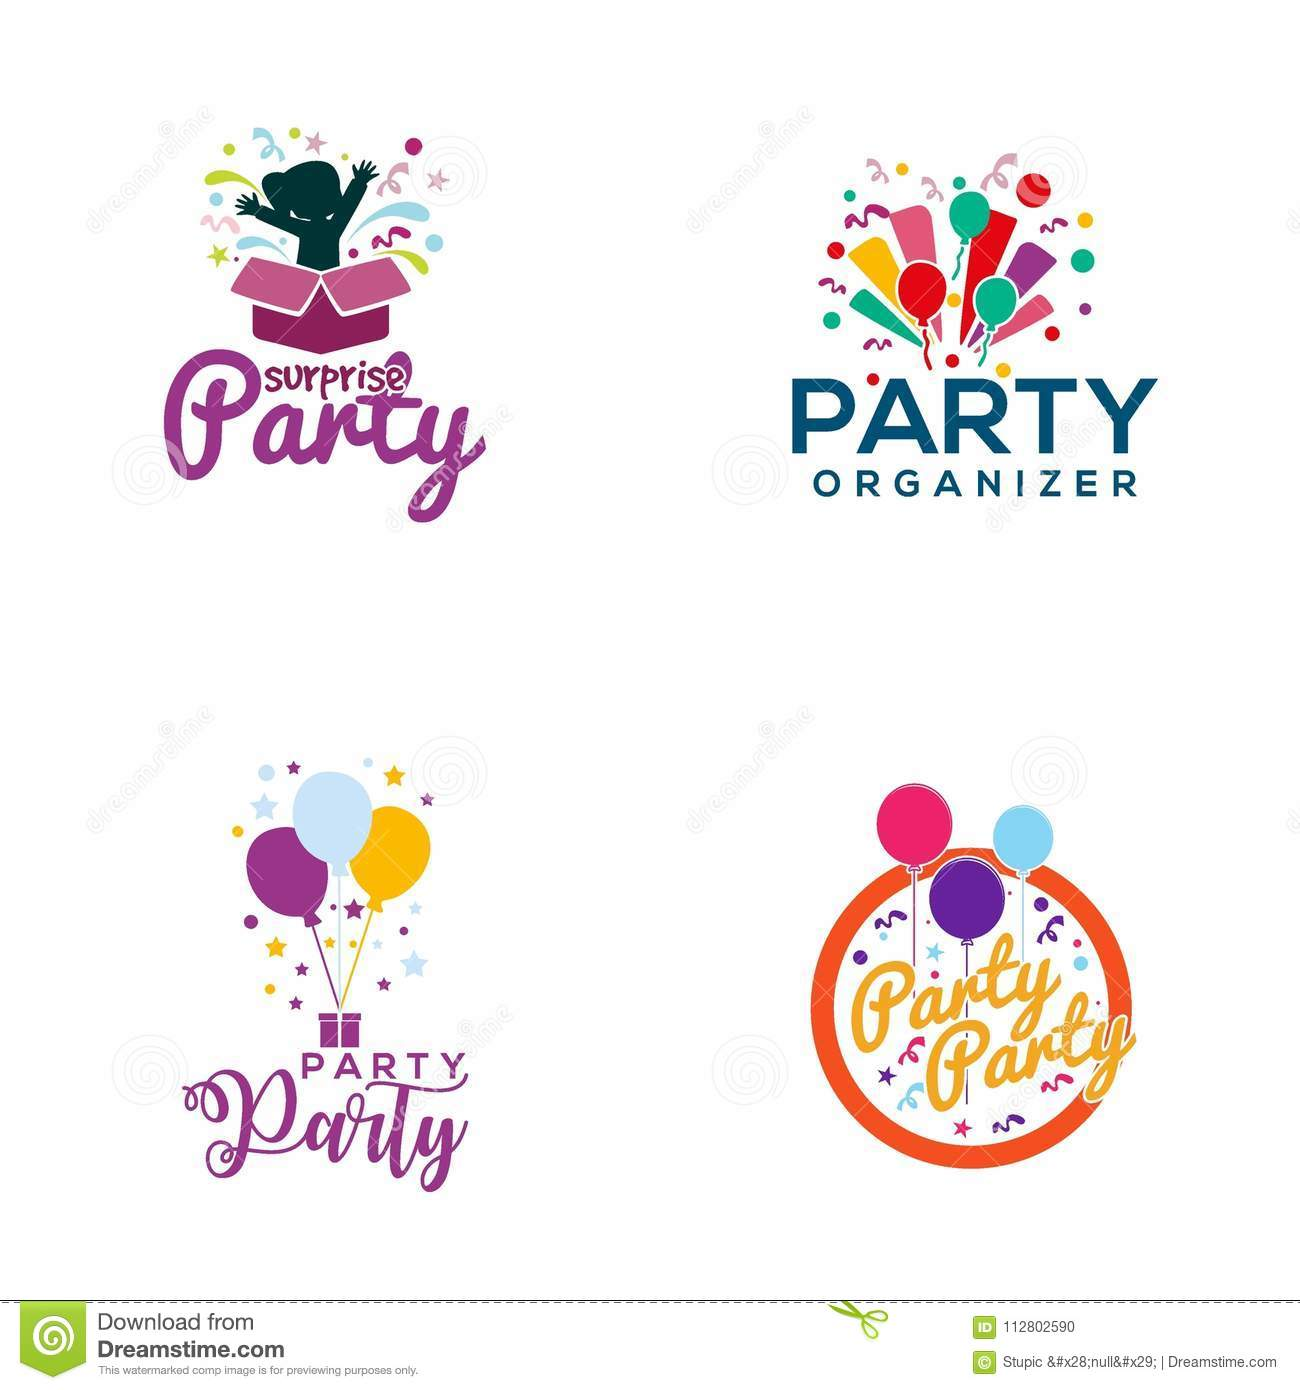 creative party logo design vector art logo stock illustration illustration of celebration logo 112802590 https www dreamstime com creative party logo design various used purposed just you great people creative party logo design vector art logo image112802590